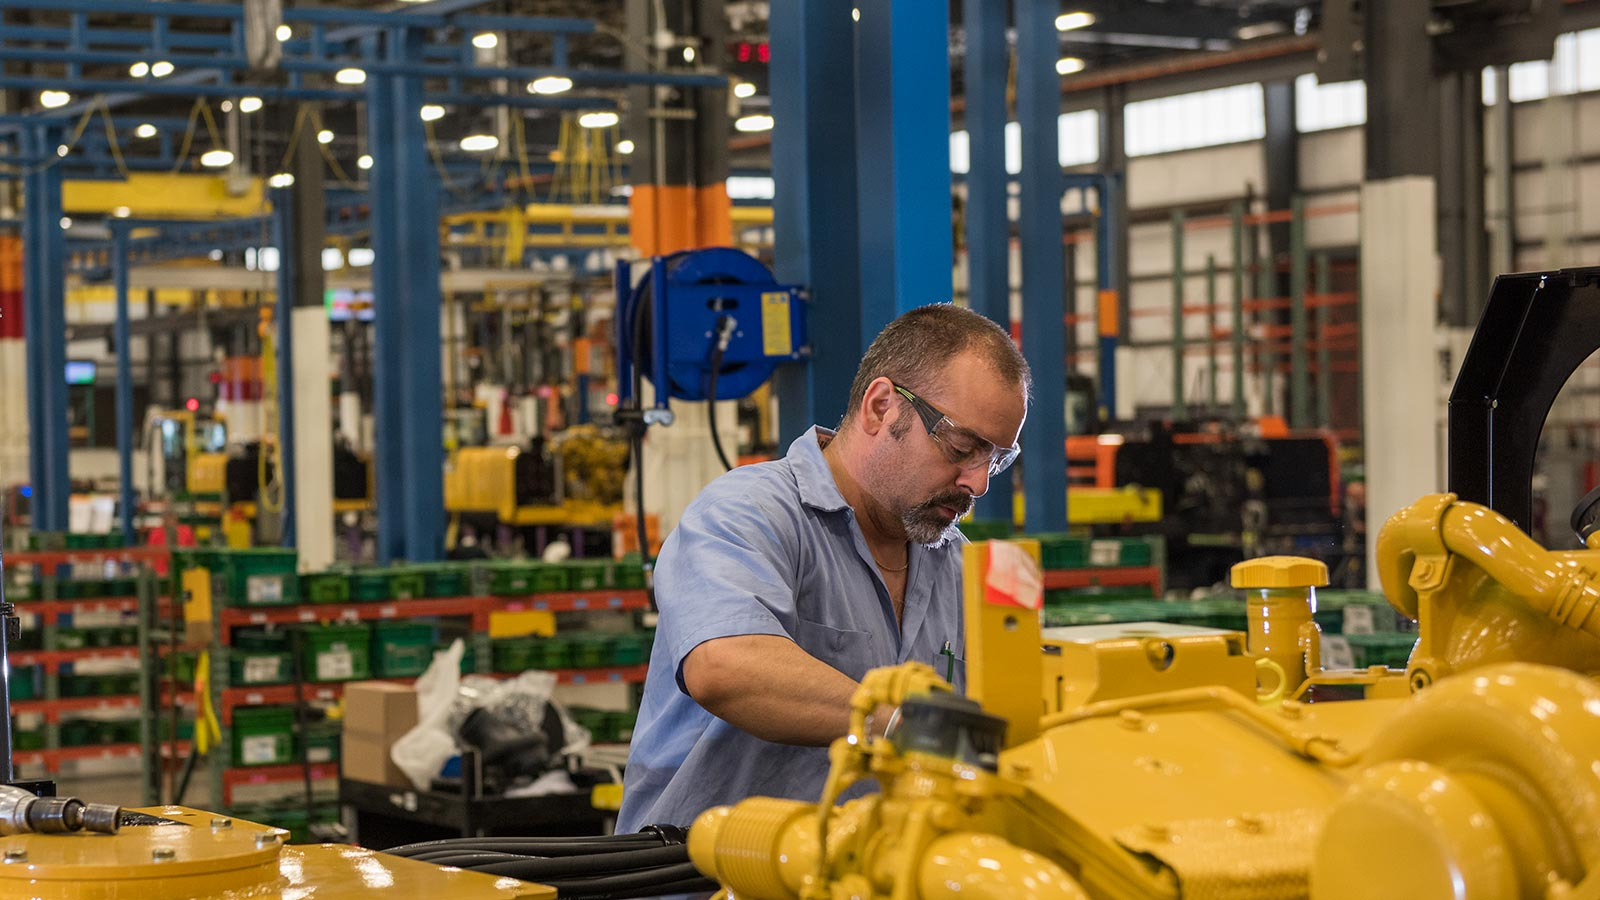 Sammy Flynt, an Assembly Lead Technician, at work in the Deere-Hitachi factory